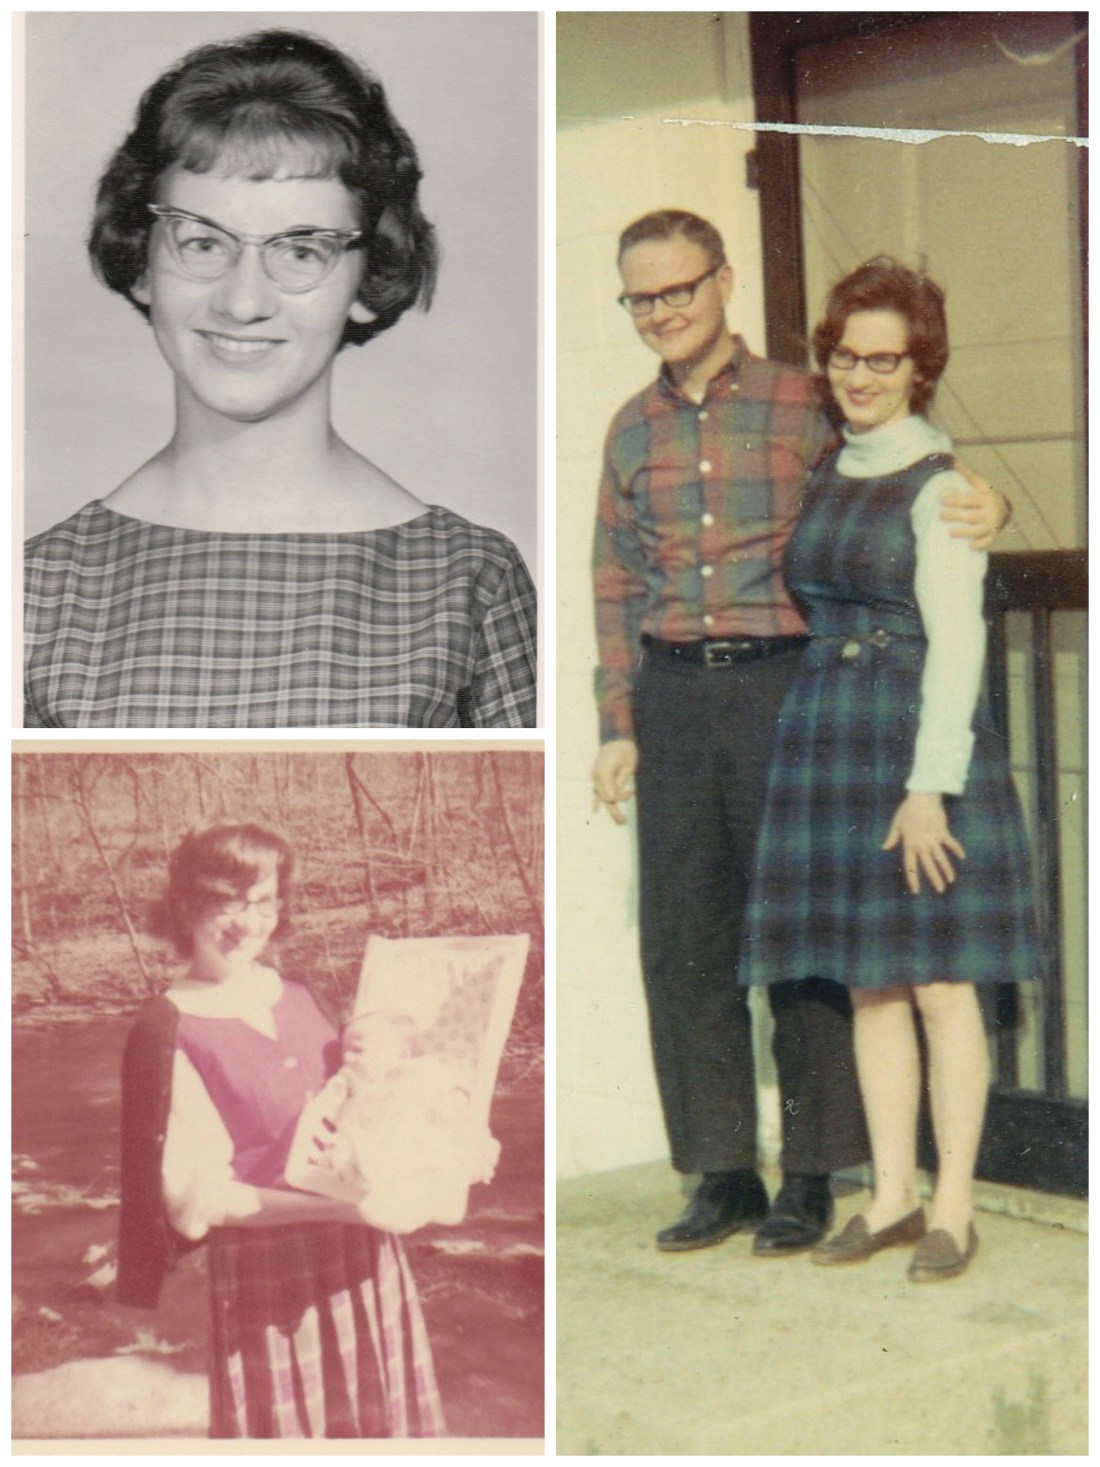 Photos of my mom wearing plaid, going back to her college days and her first days as a young mother.